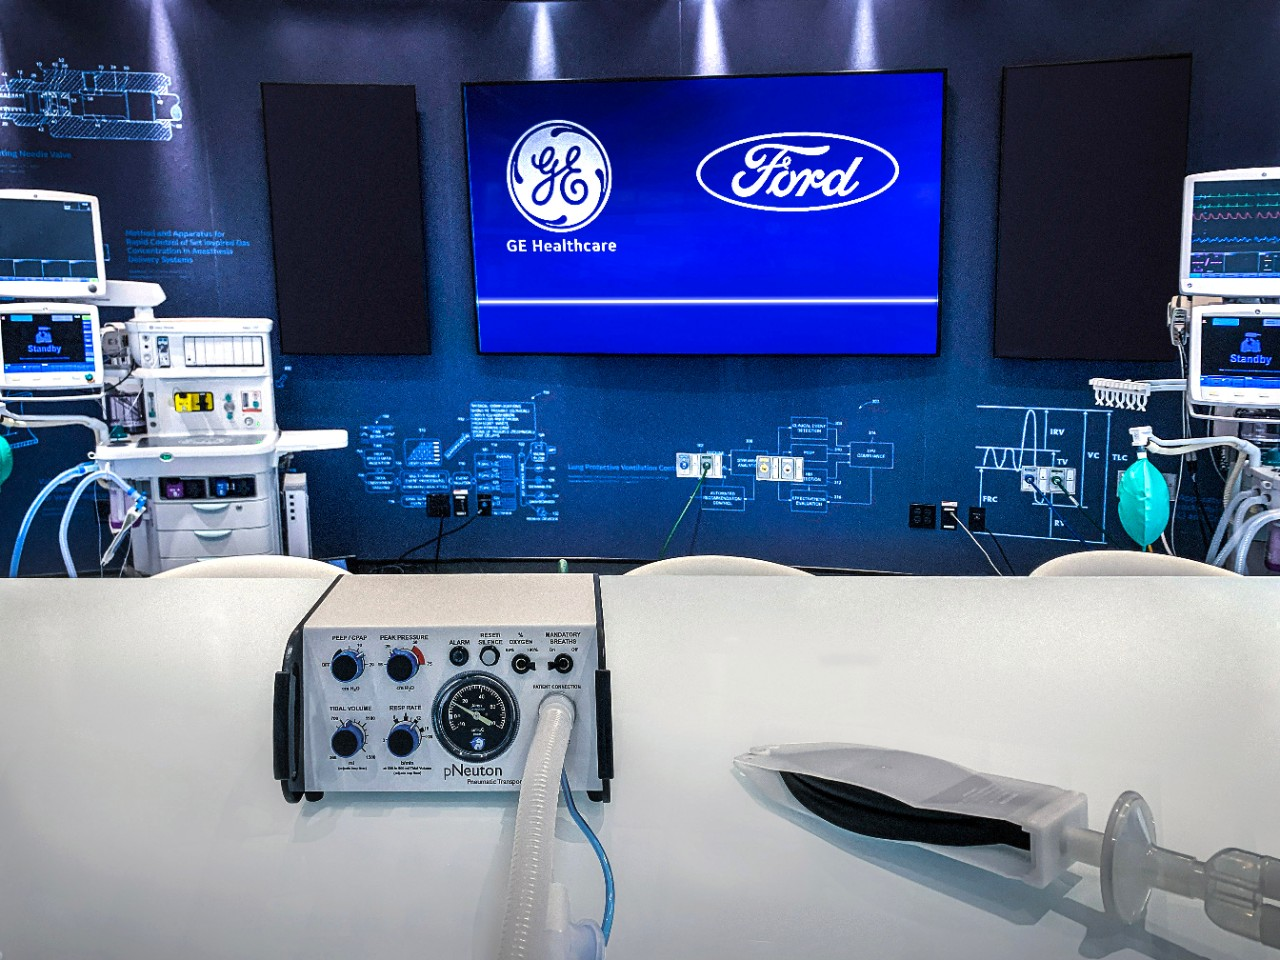 Coronavirus pandemic | Ford, GE to produce 50,000 ventilators in 100 days